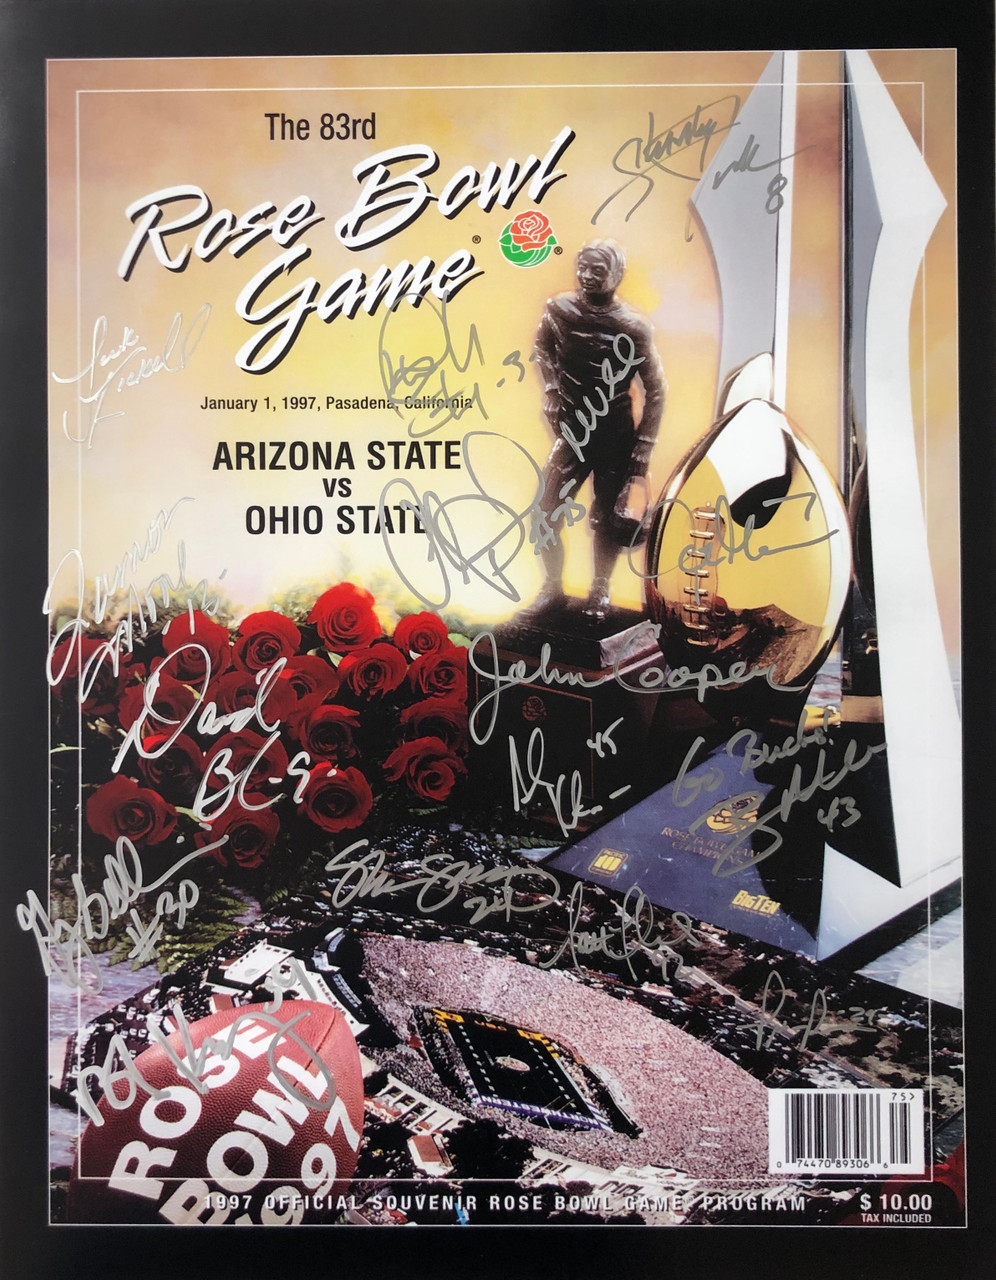 1997 Rose Bowl Game Program Ohio State Buckeyes 16x20 Autographed Photo - Certified Authentic